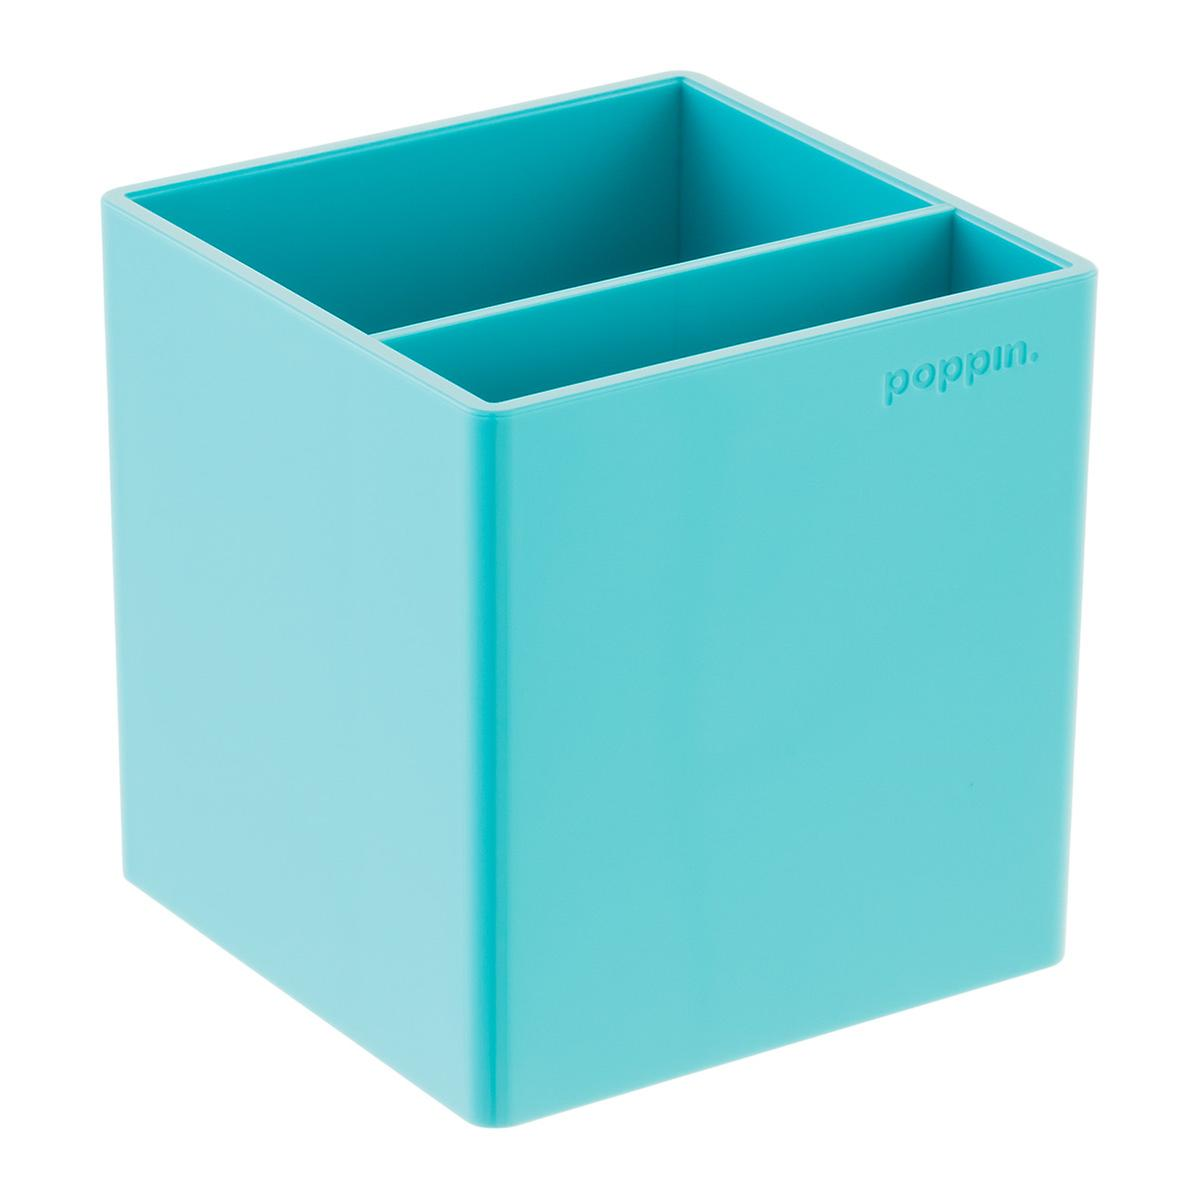 Aqua Poppin Letter Tray Storage Kit The Container Store